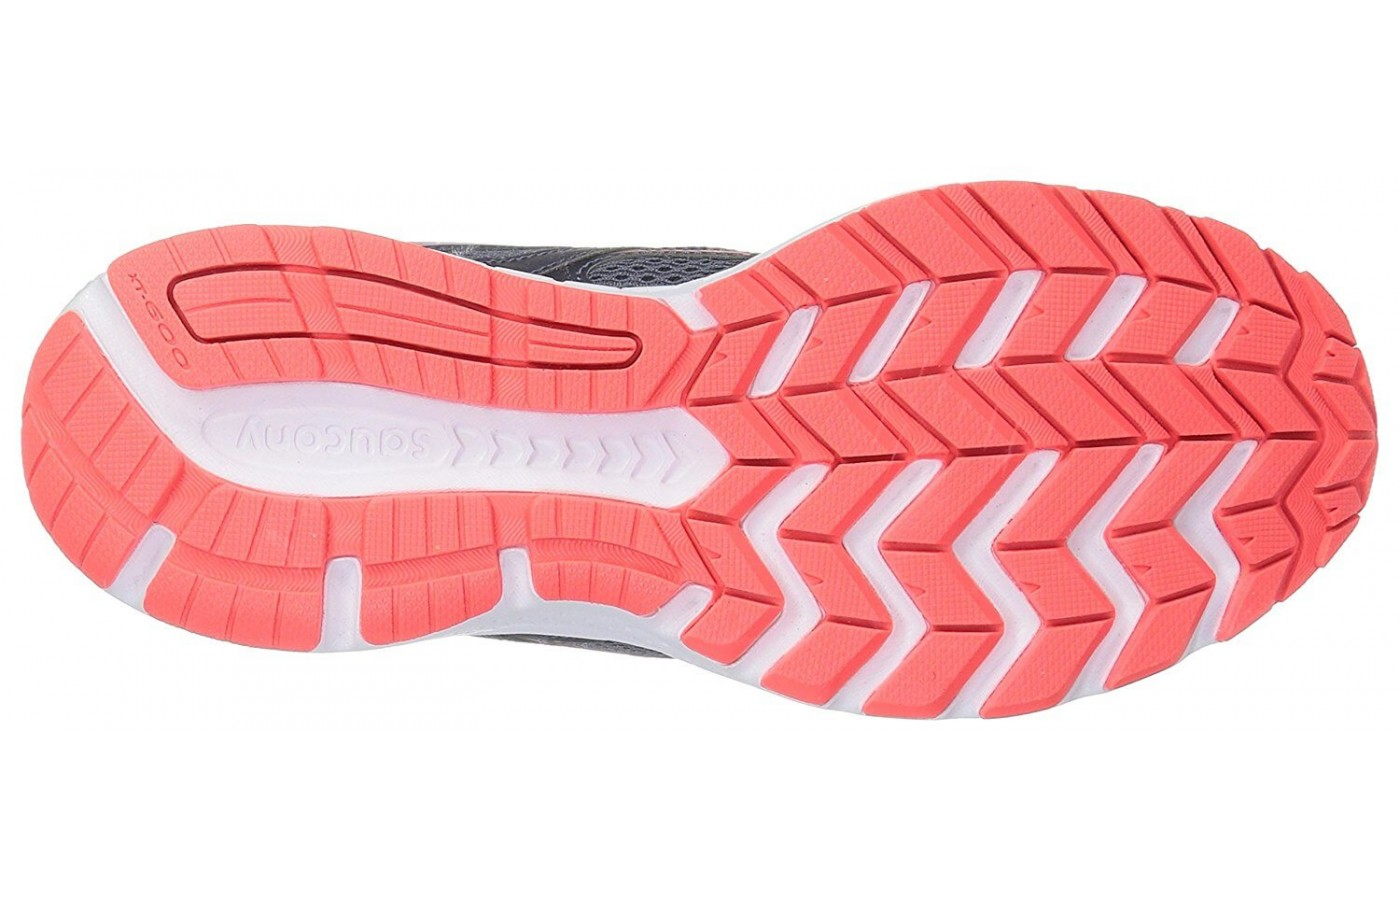 The Saucony Cohesion 11 features a rubber outsole